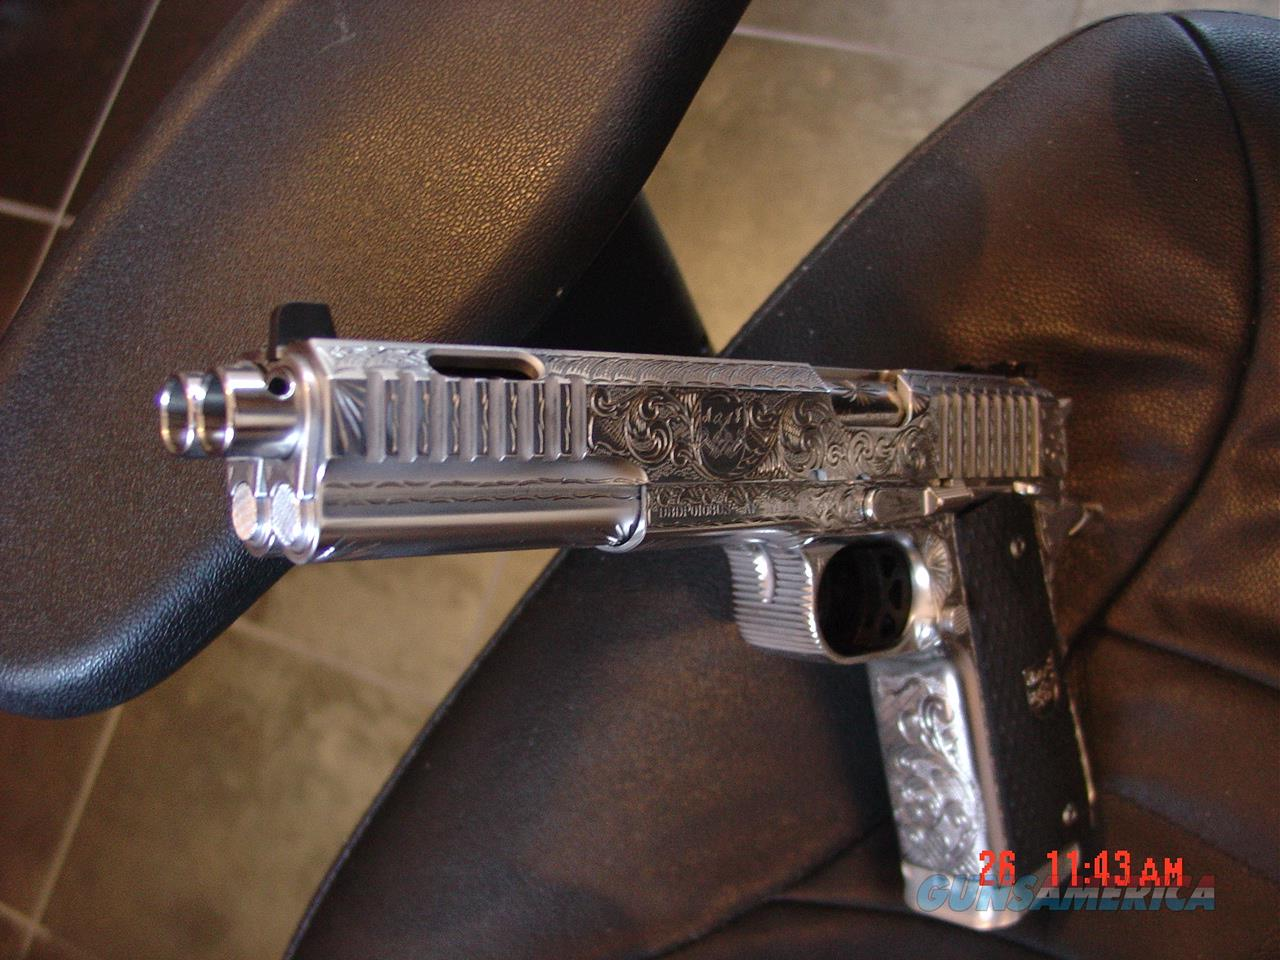 """Arsenal Firearms,Double barrel 45, Dueller Prismatic,fully engraved & polished by Flannery Engraving,6"""" barrel, ported,16 shots, made in Italy,super rare!! nicer in person !  Guns > Pistols > Custom Pistols > 1911 Family"""